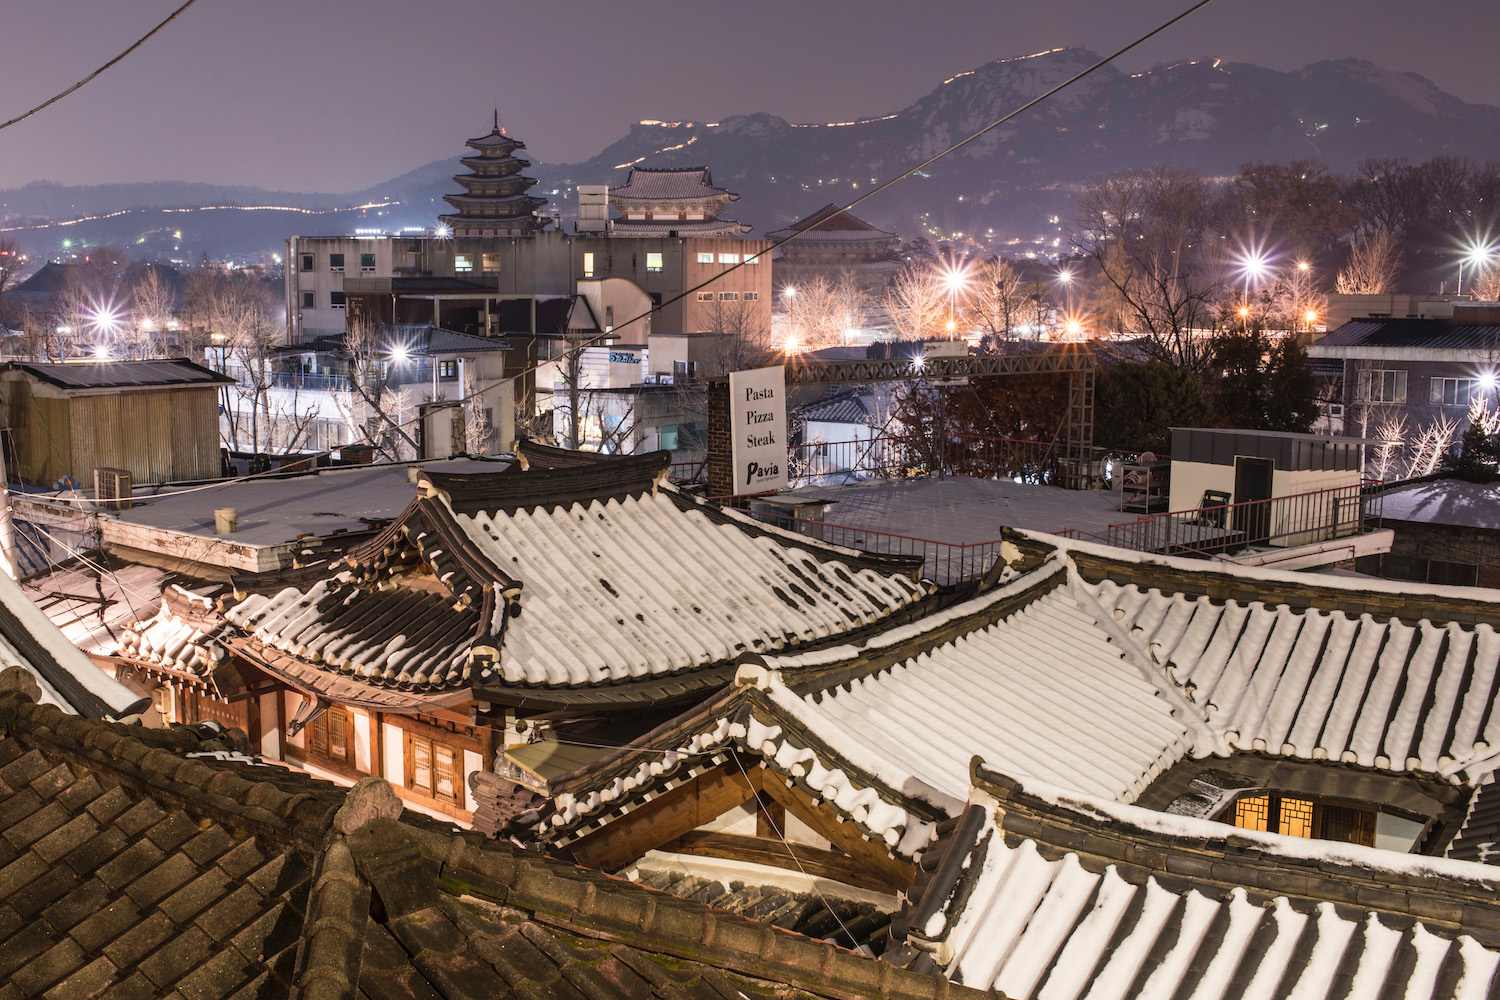 Seoul in Winter